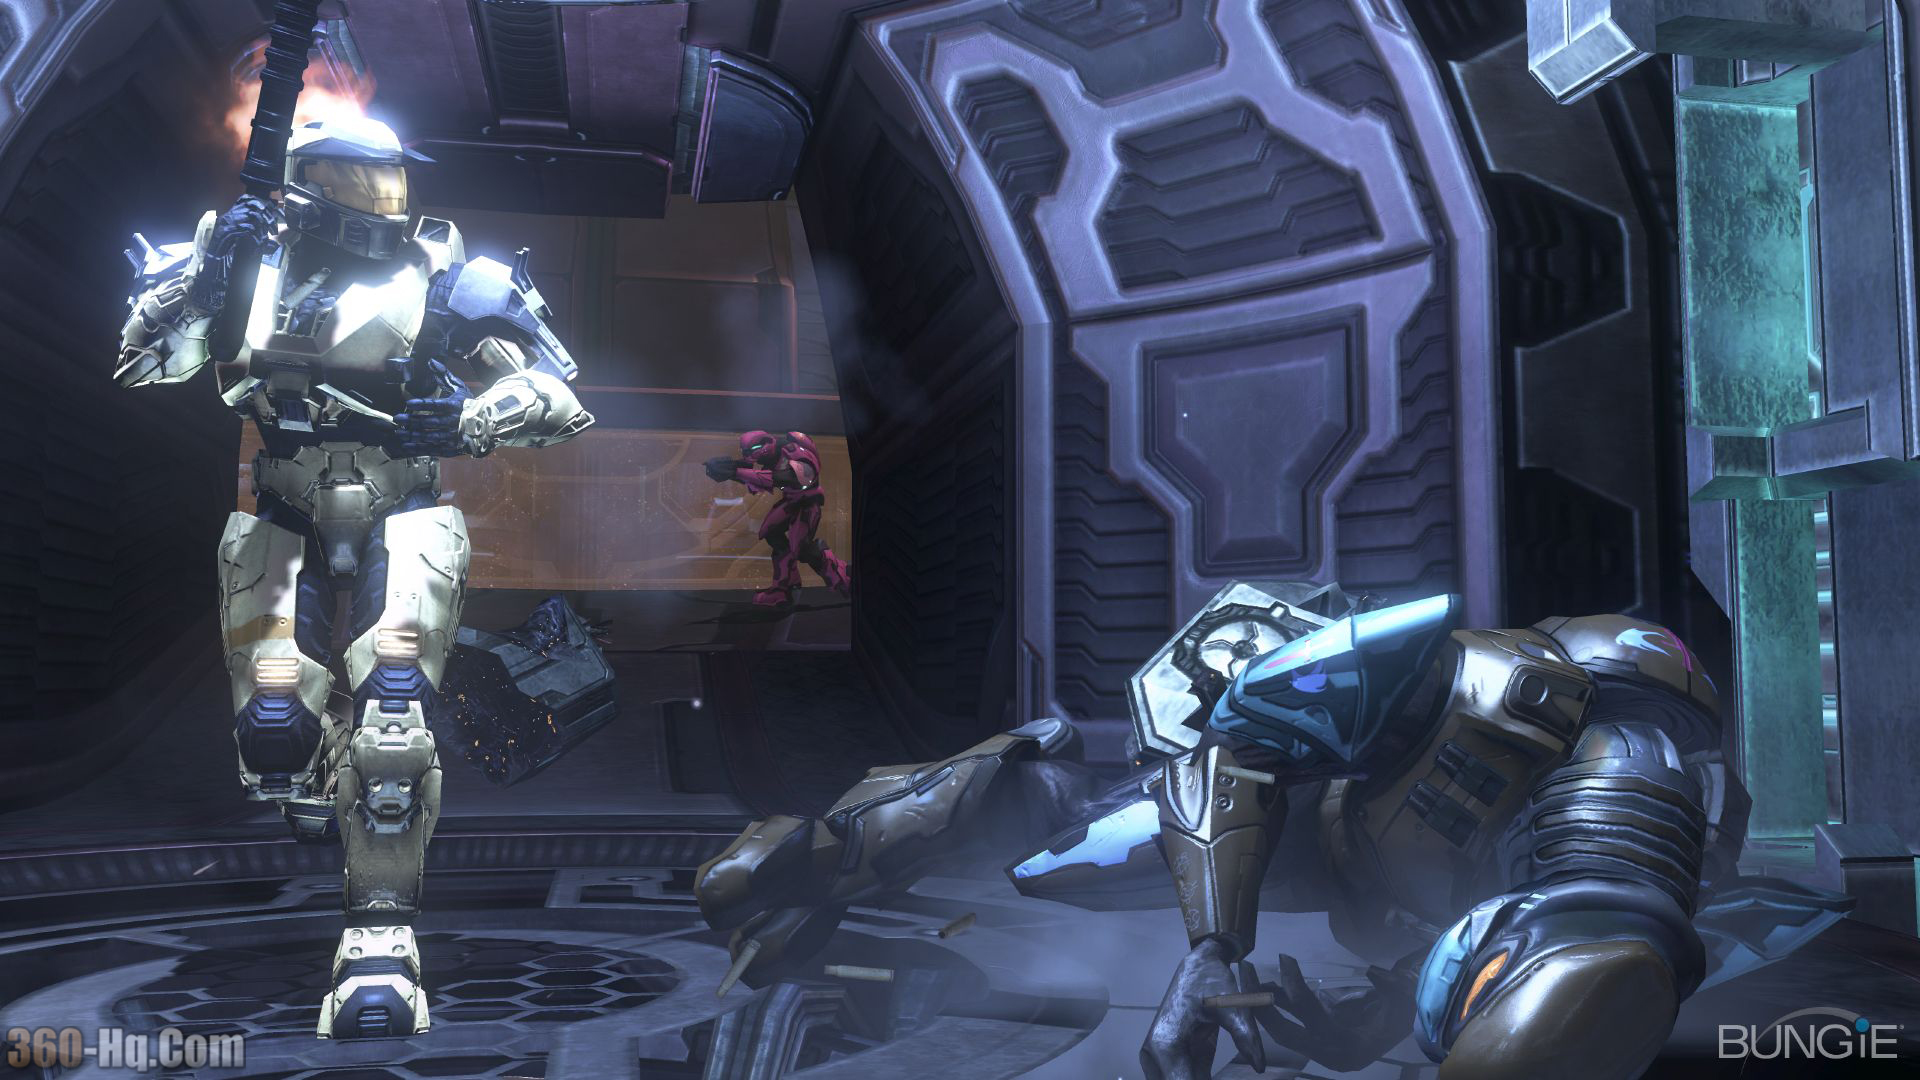 Halo 3 Screenshot 5090